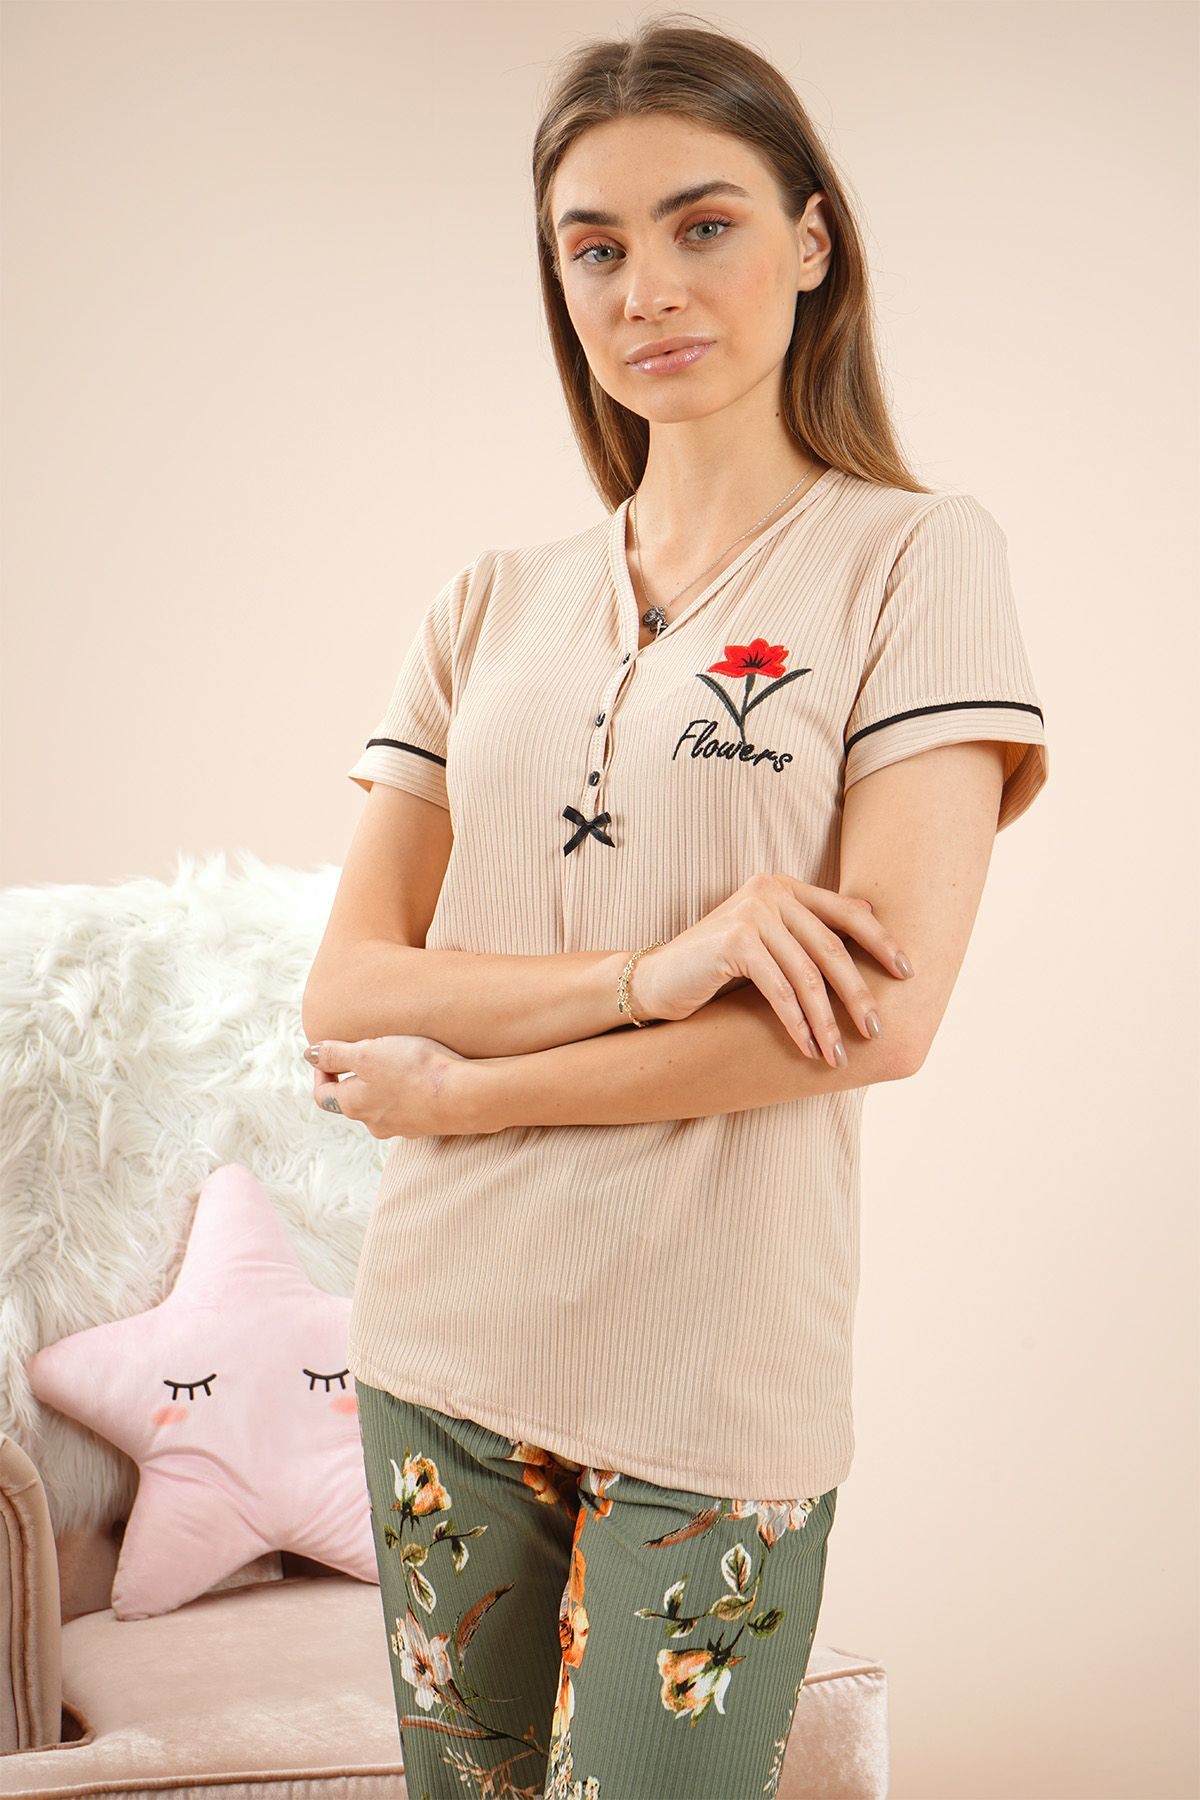 Women's Short Sleeves Pajamas - 55205 Grey